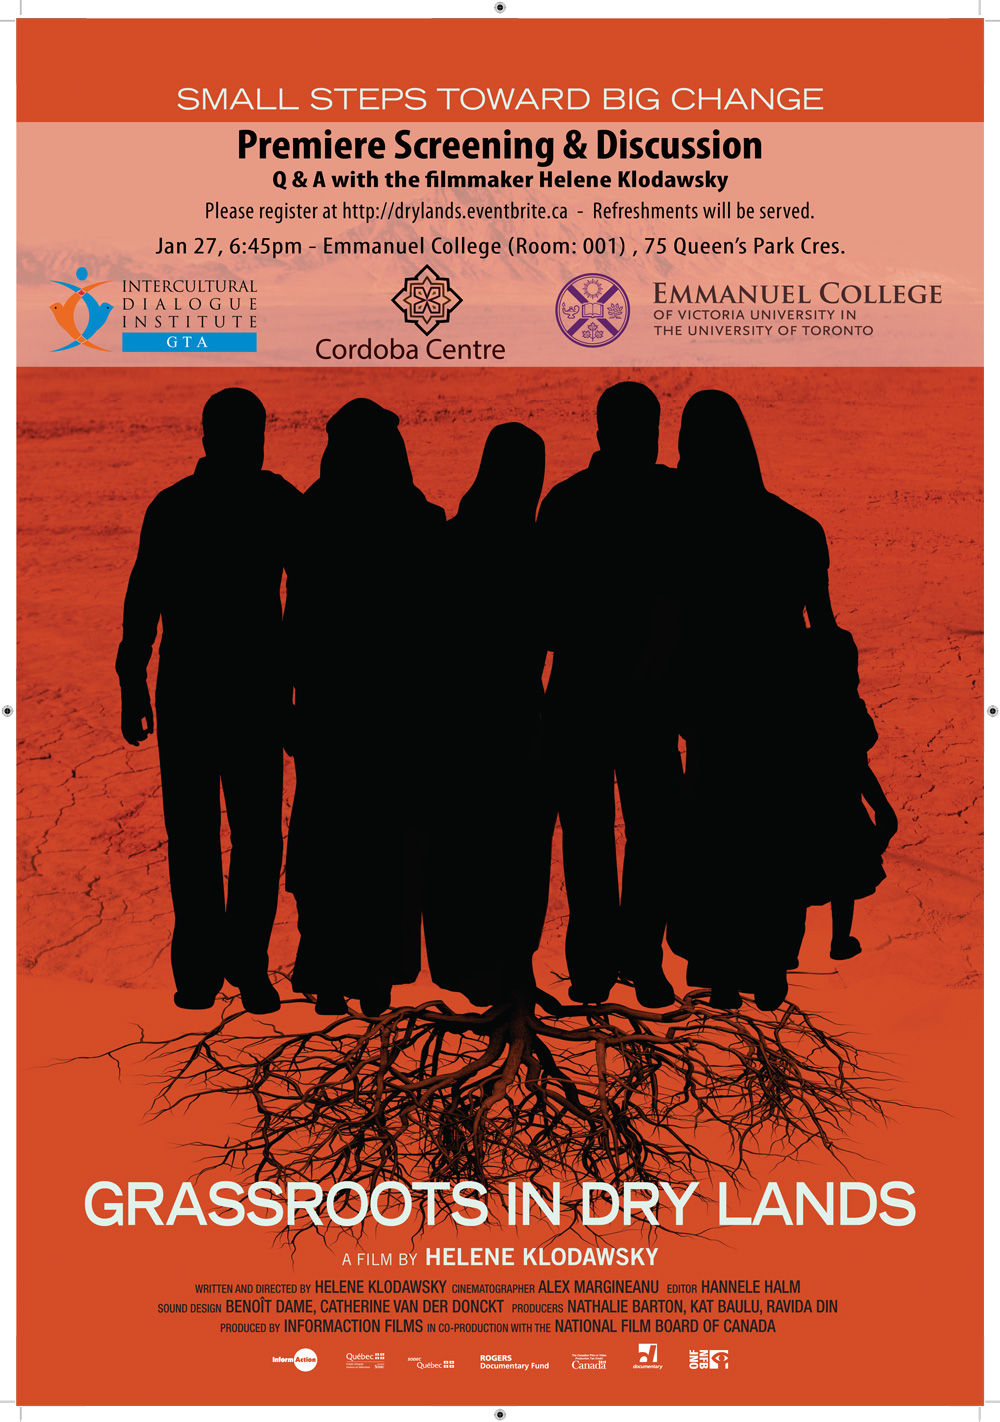 Grassroots in Drylands